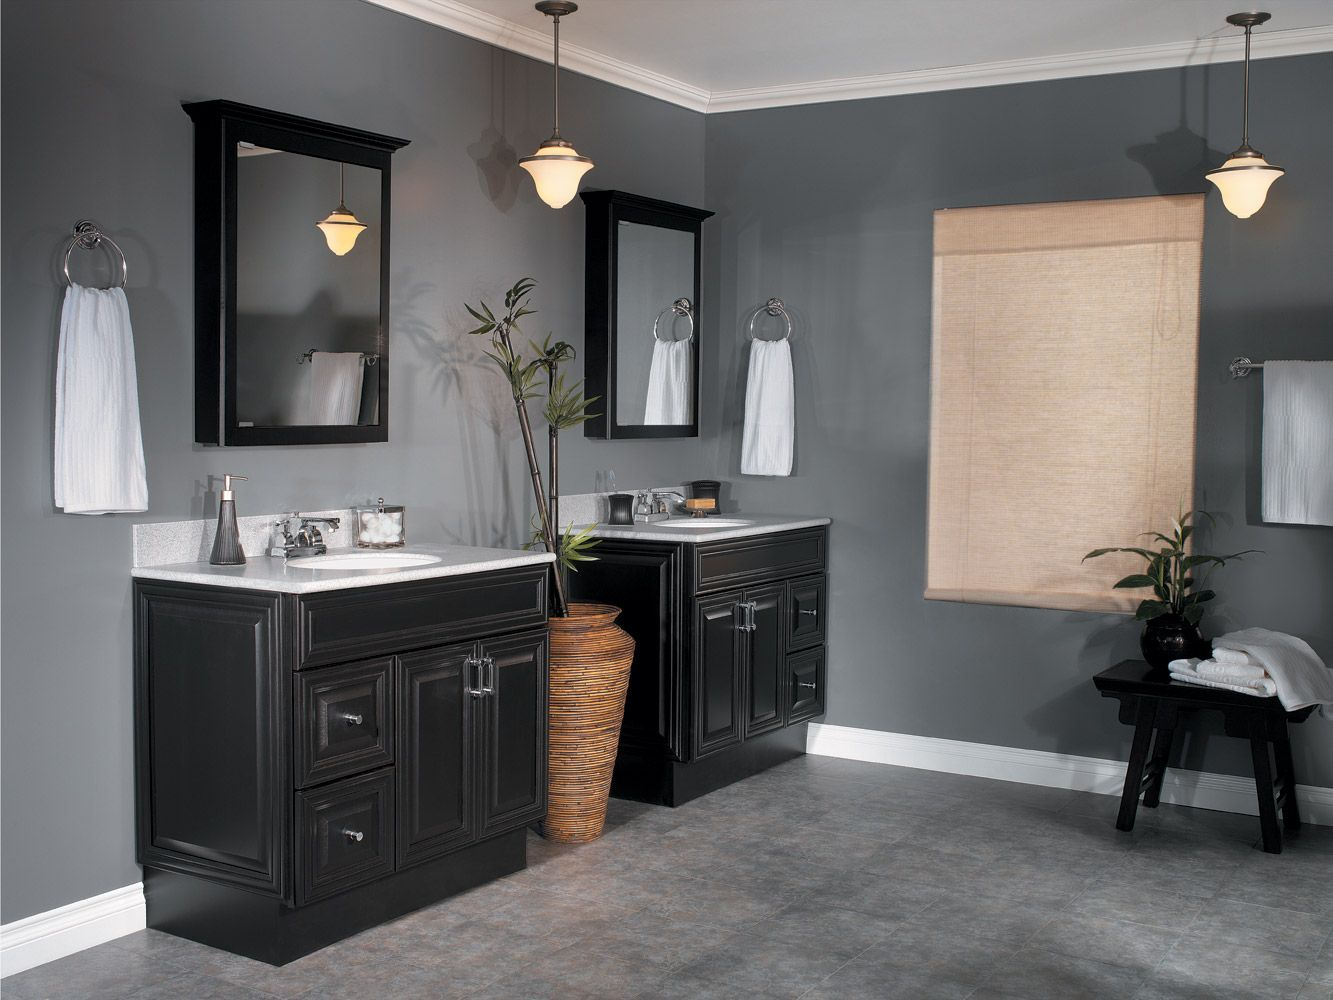 Black and white bathroom walls - Images Bathroom Dark Wood Vanity Tile Bathroom Wall Along With Black Master